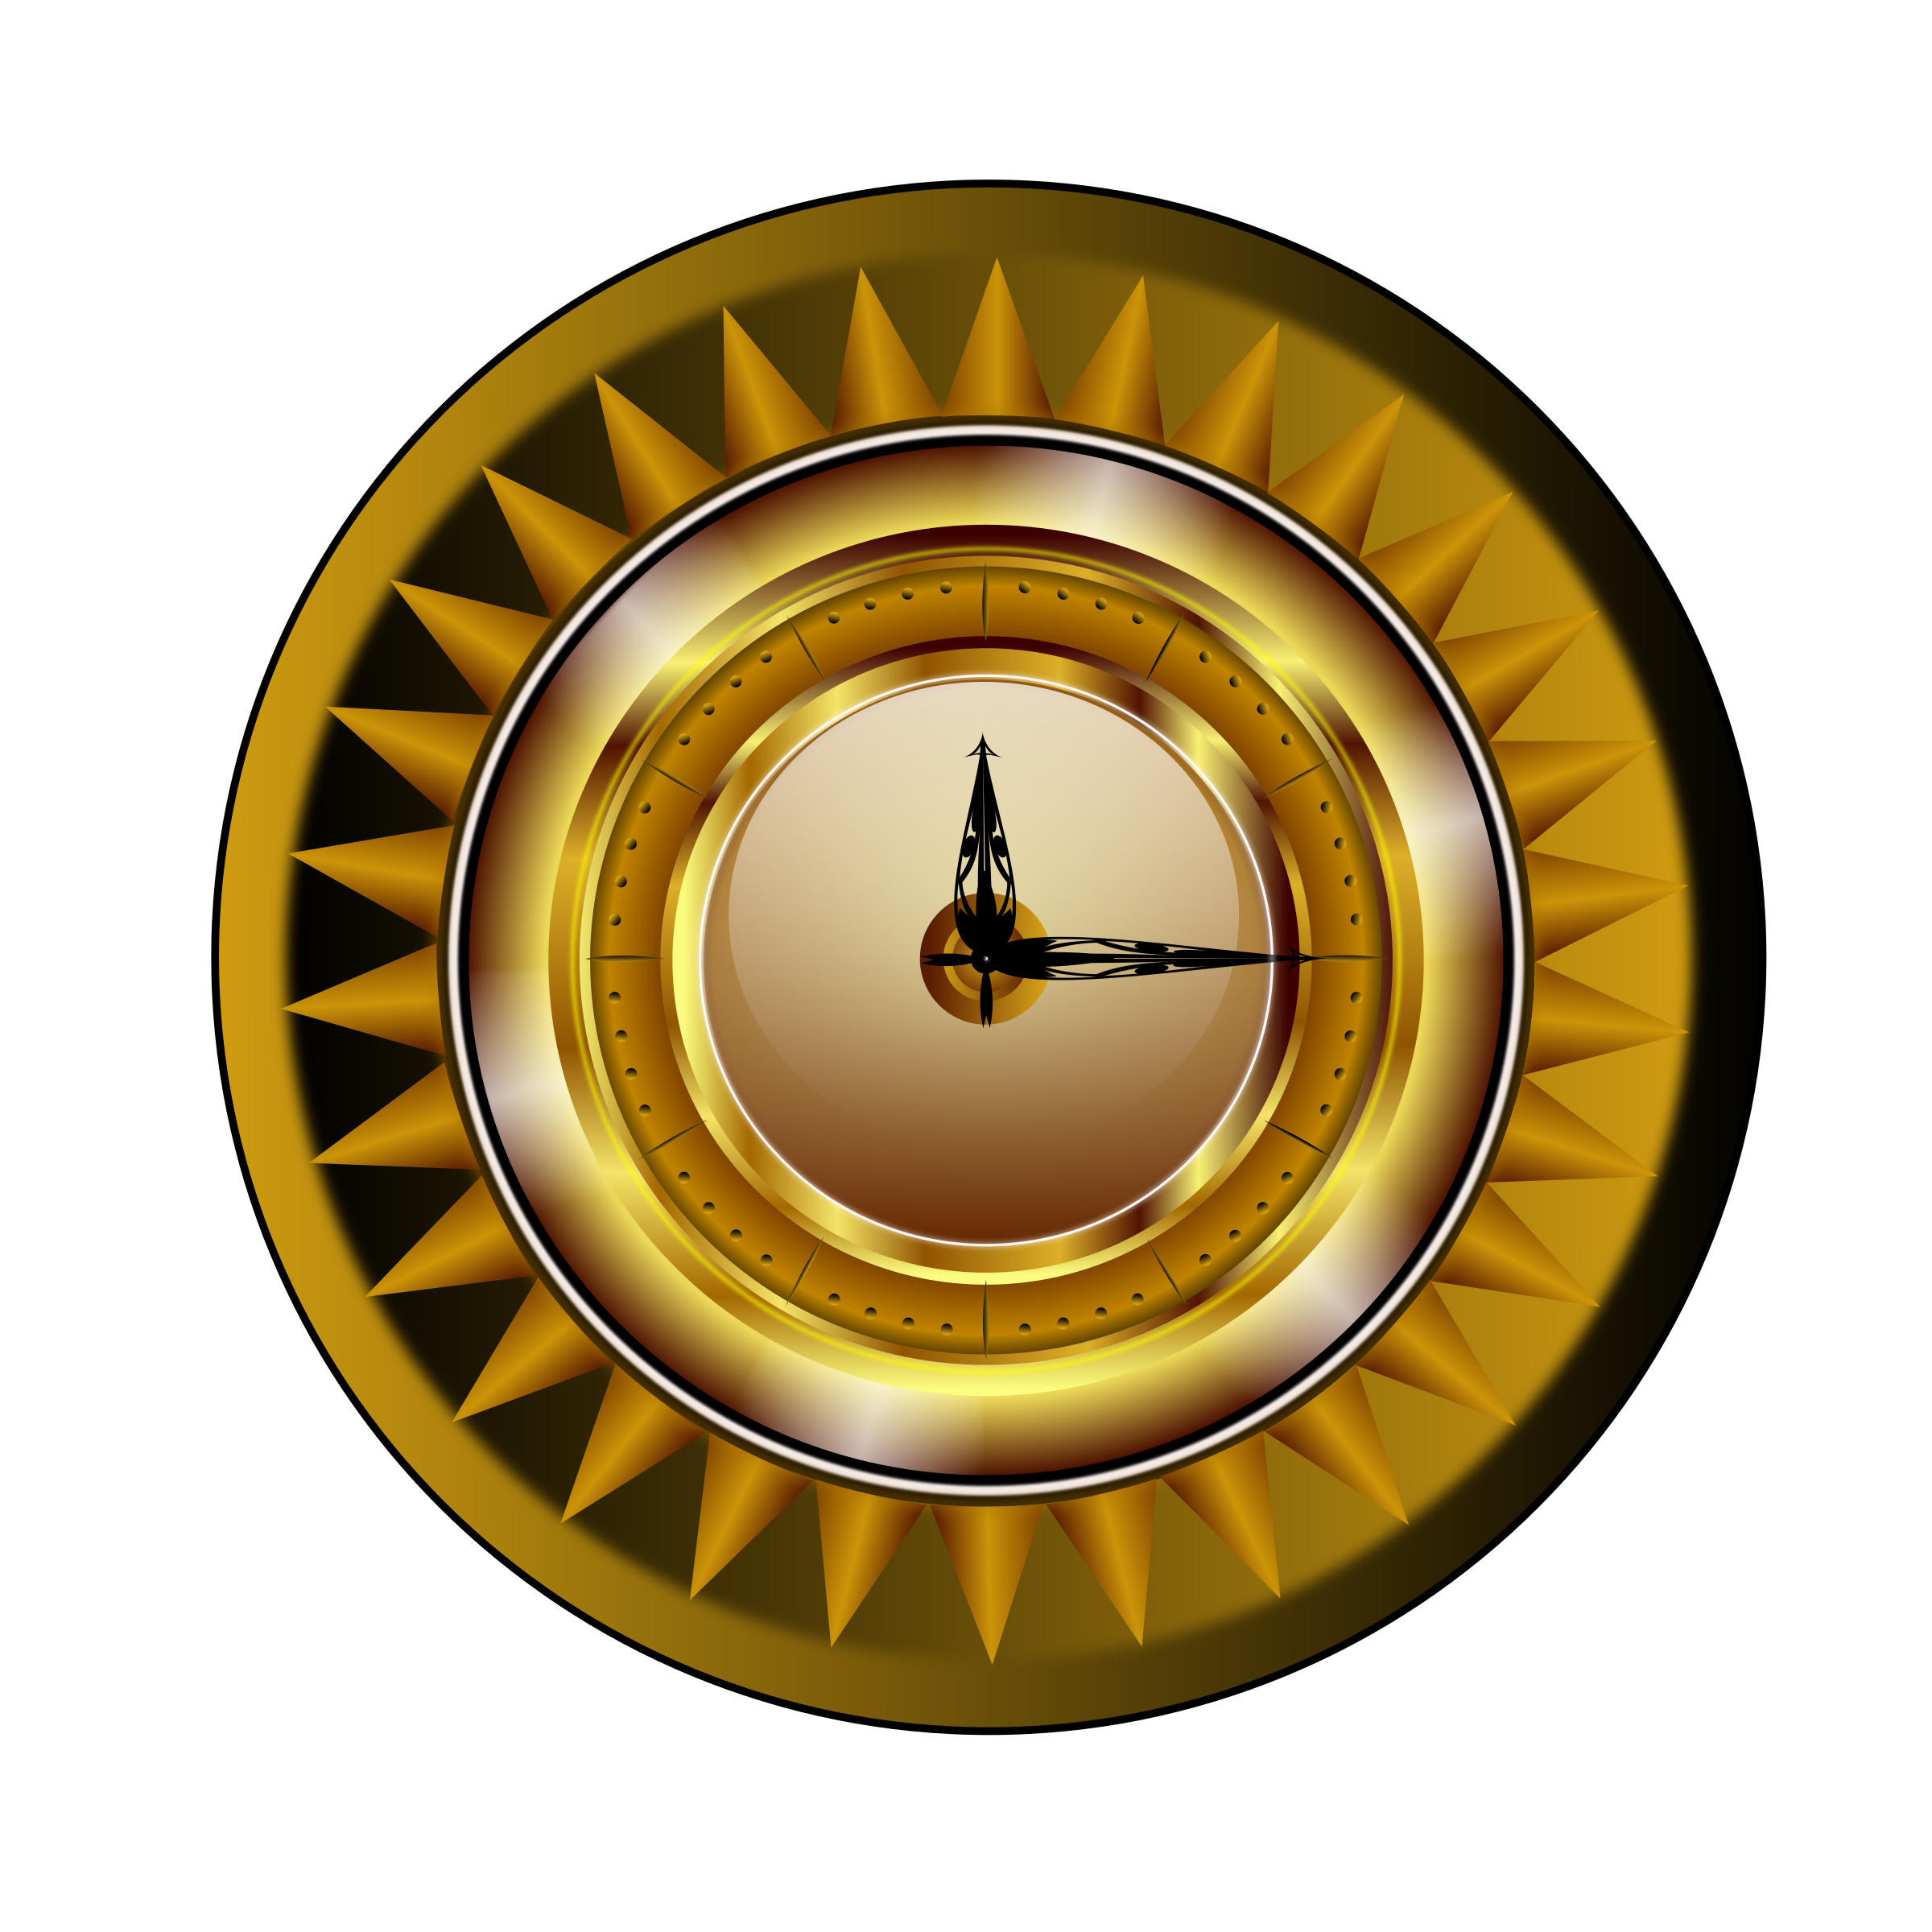 Gold clock by roshellin